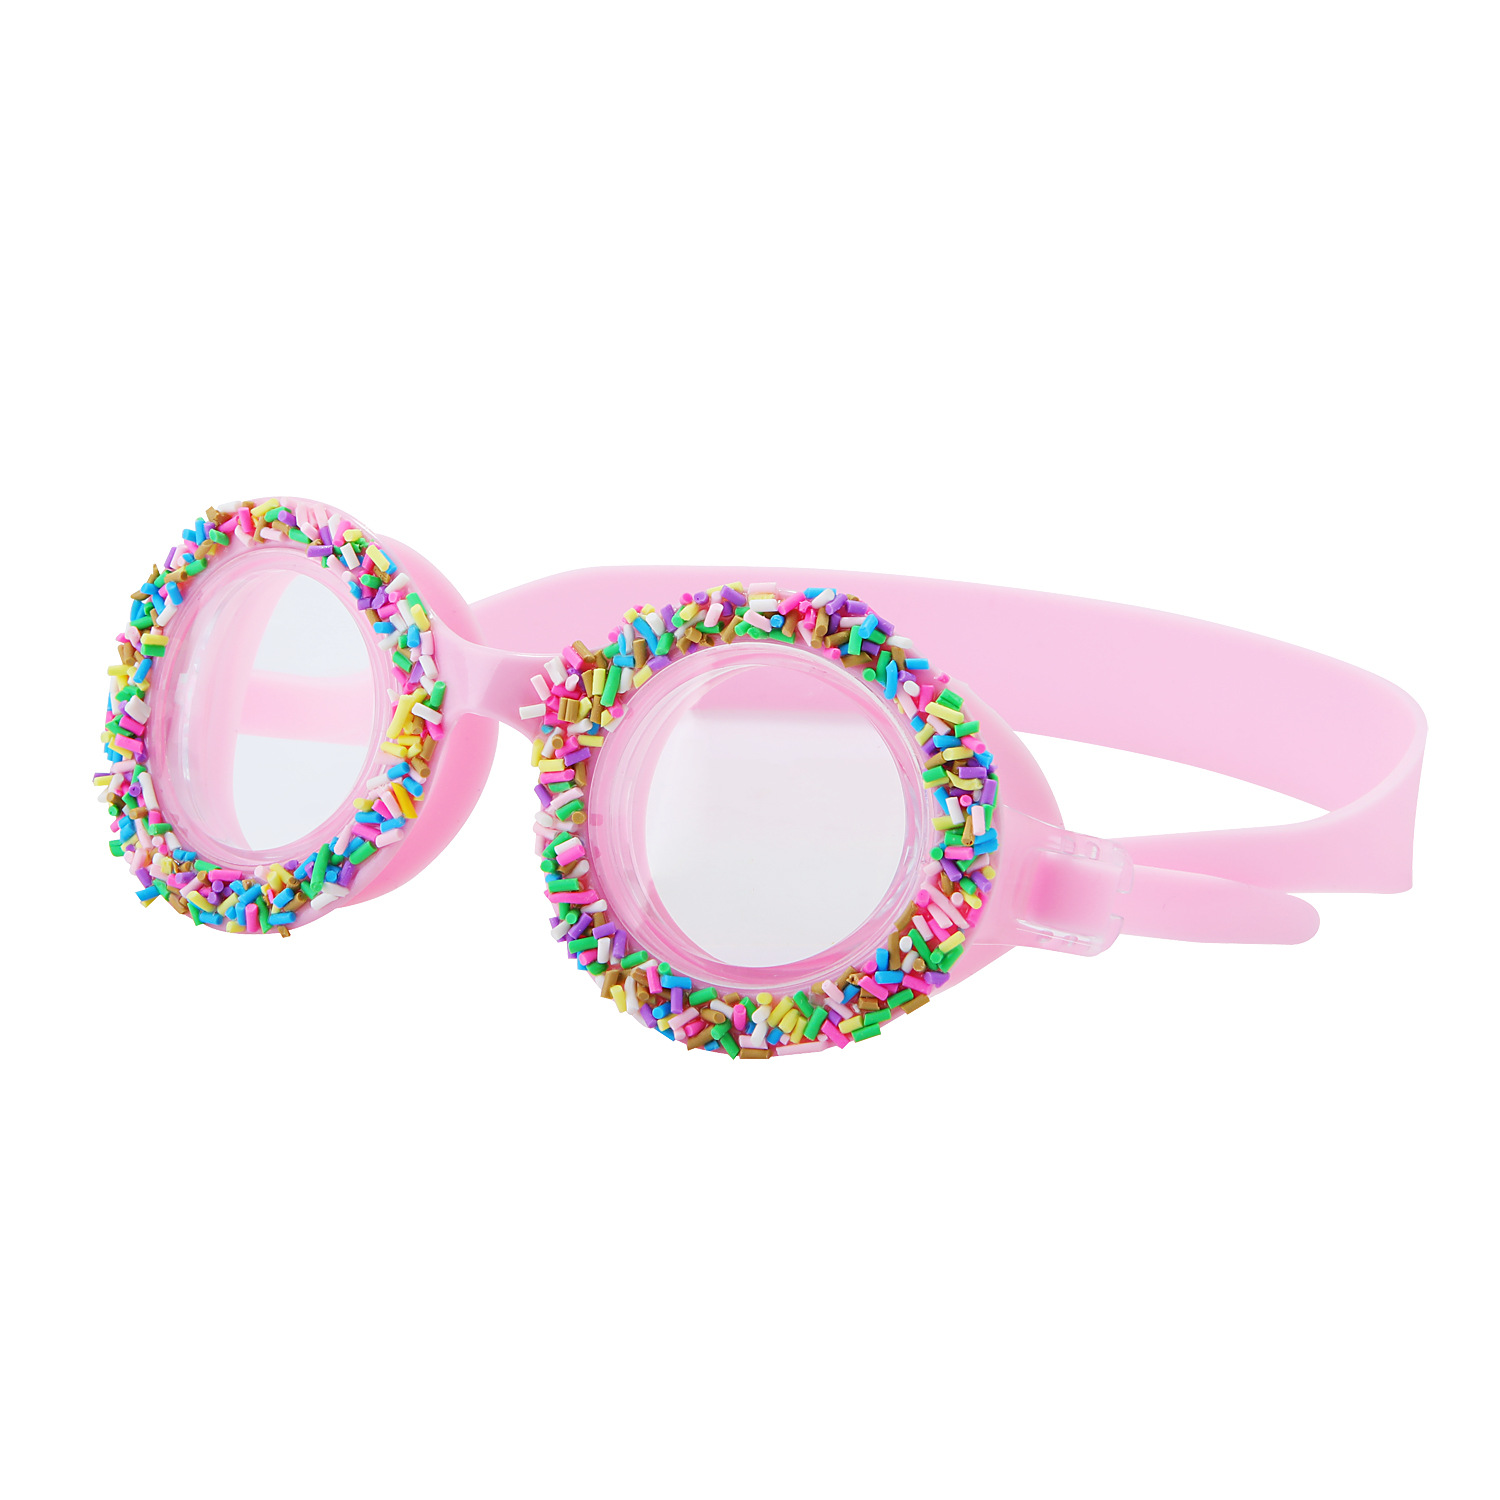 Kids Swimming Glasses Silicone Waterproof Anti-fog Eyes Protection Goggles Pink